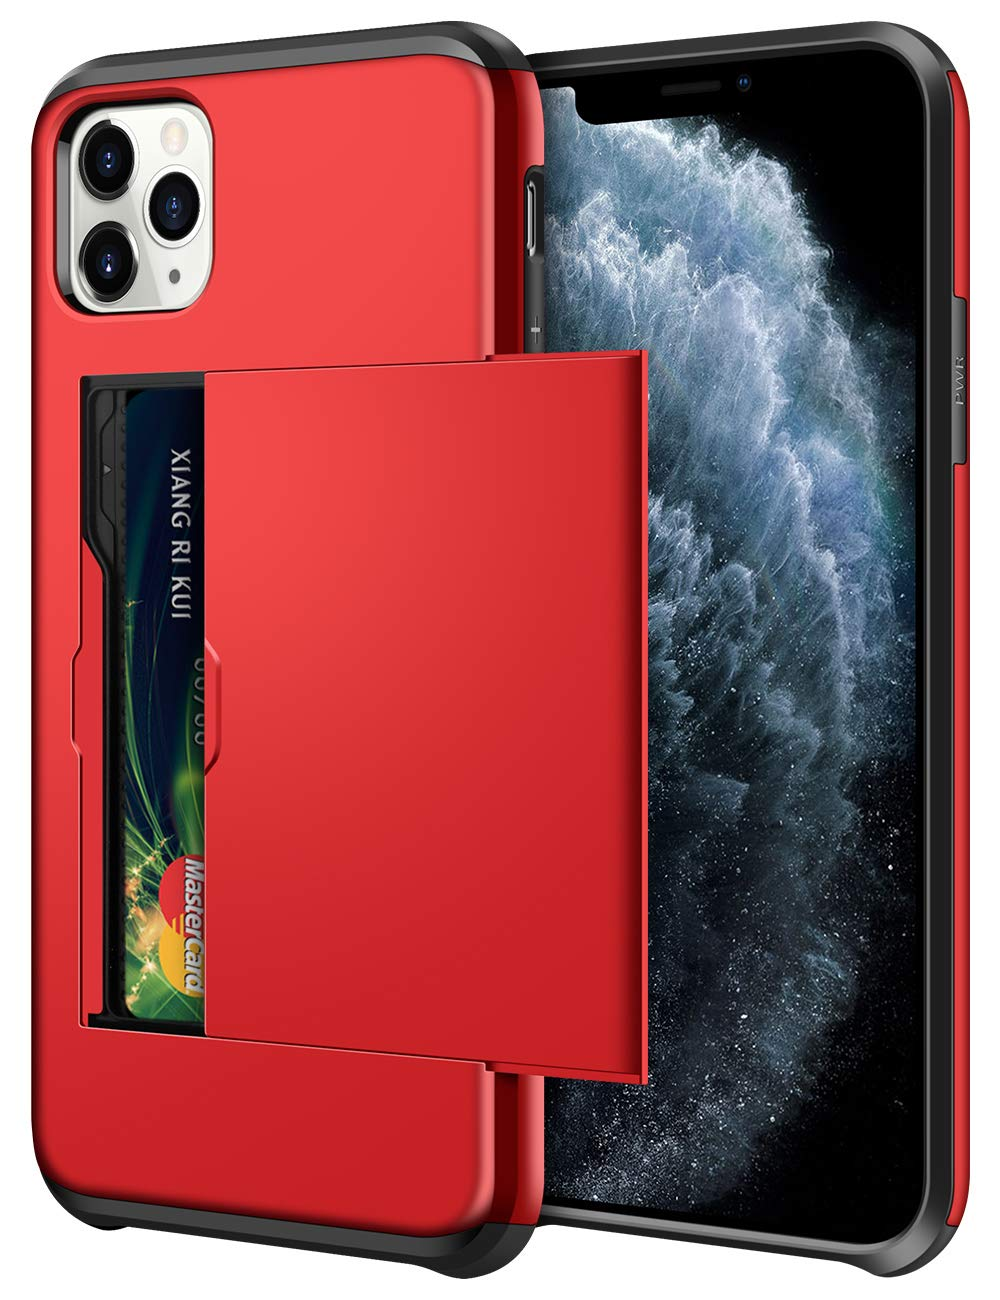 SAMONPOW Wallet Case for iPhone 11 Pro Case with Card Holder Dual Layer Hybrid Shell Heavy Duty Protection Shockproof Anti Scratch Soft Rubber Bumper Cover Case for iPhone 11 Pro 5.8 inch Metallic Red